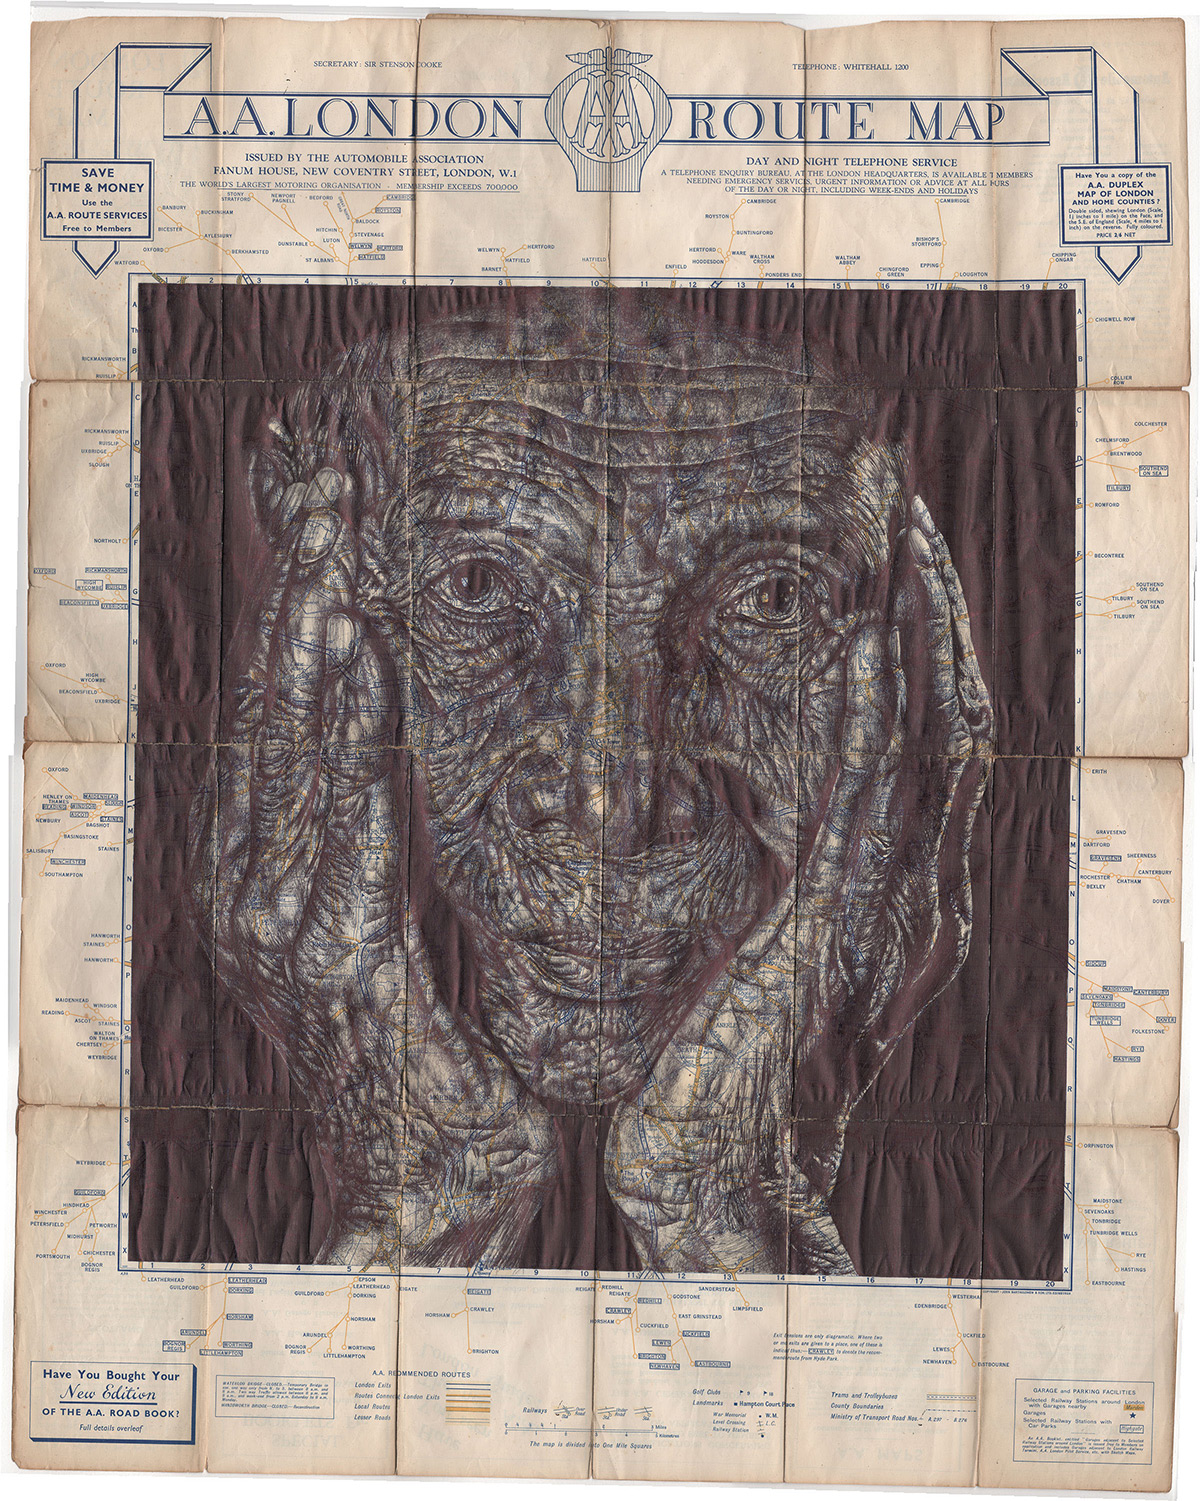 New Bic Ballpoint Pen Portraits on Vintage Maps and Stationery by Mark Powell